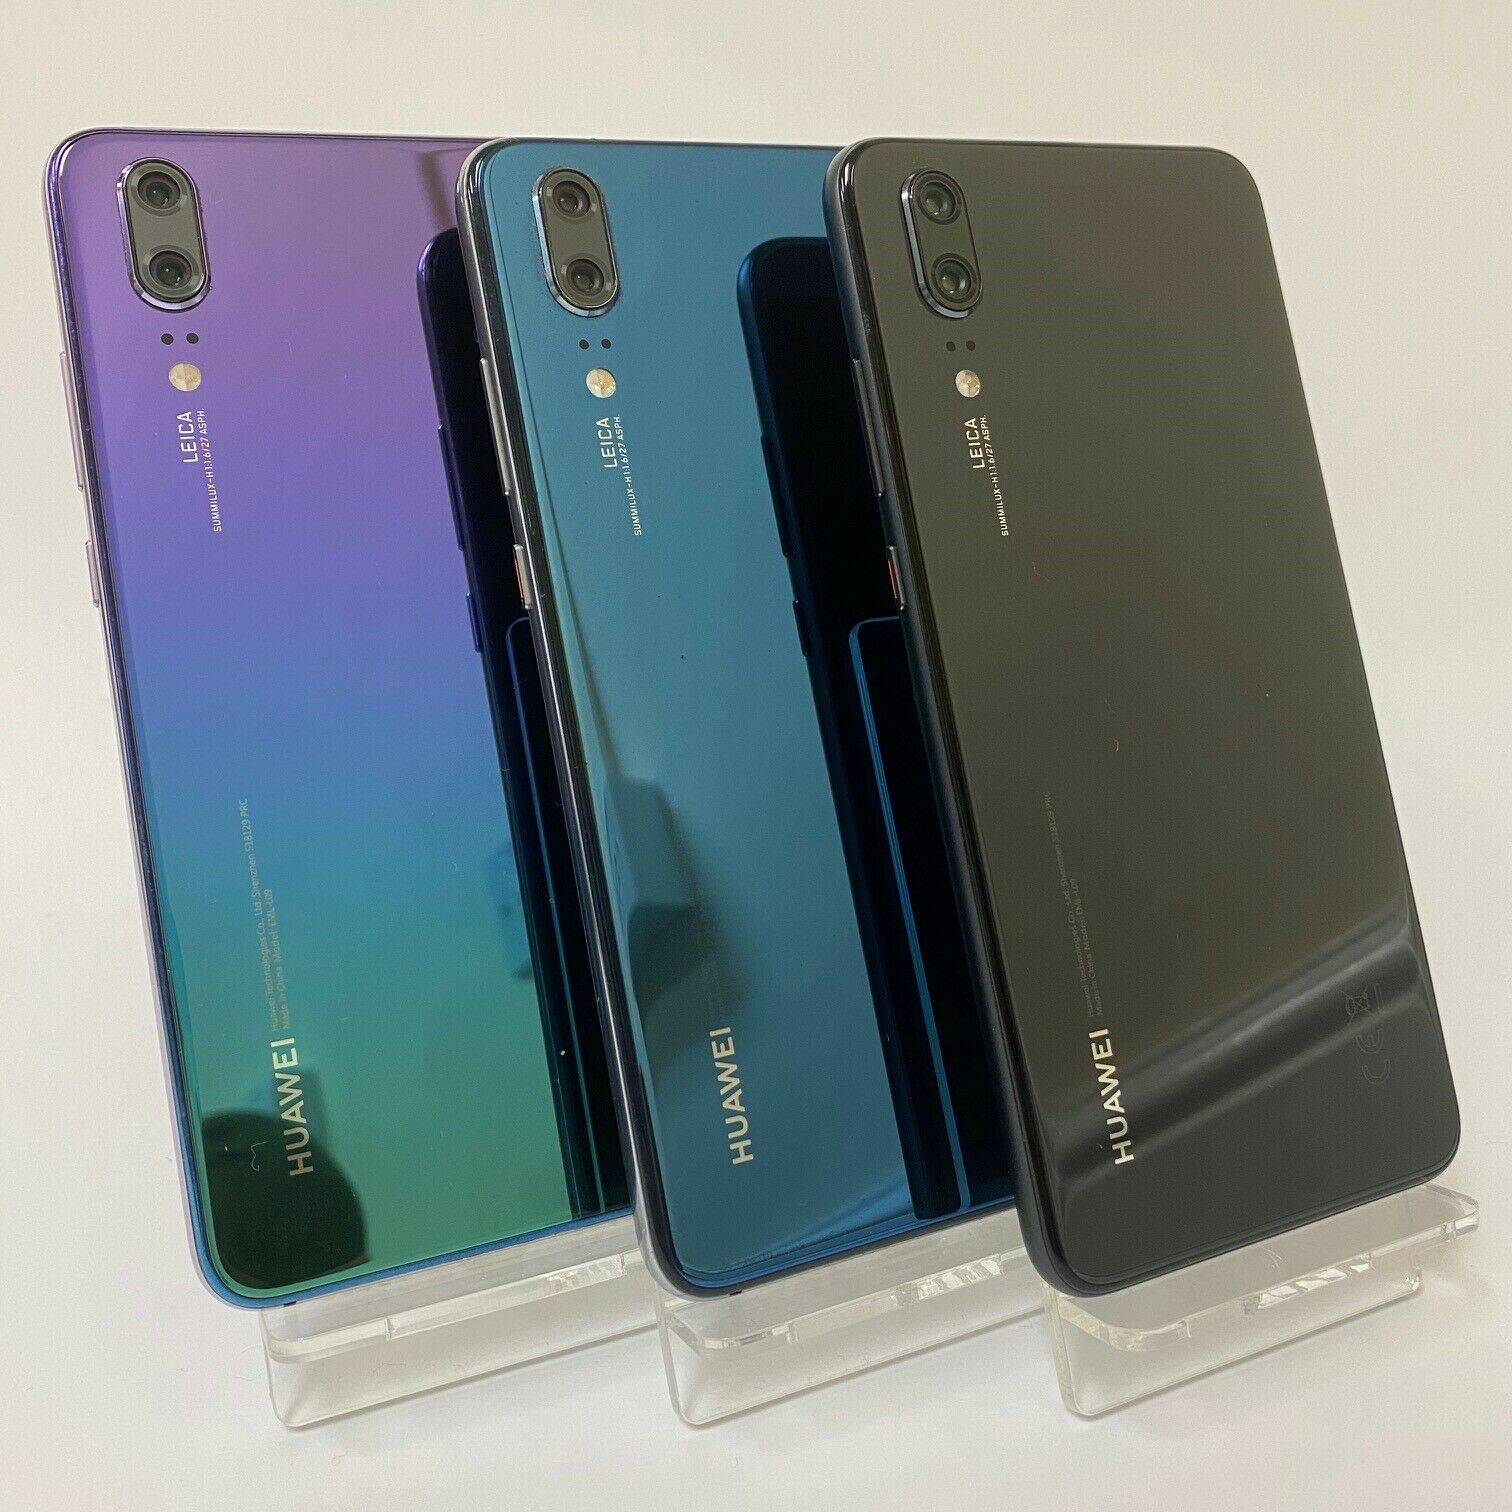 Android Phone - HUAWEI P20 128GB - UNLOCKED - Black / Blue / Twilight - Smartphone Mobile Phone